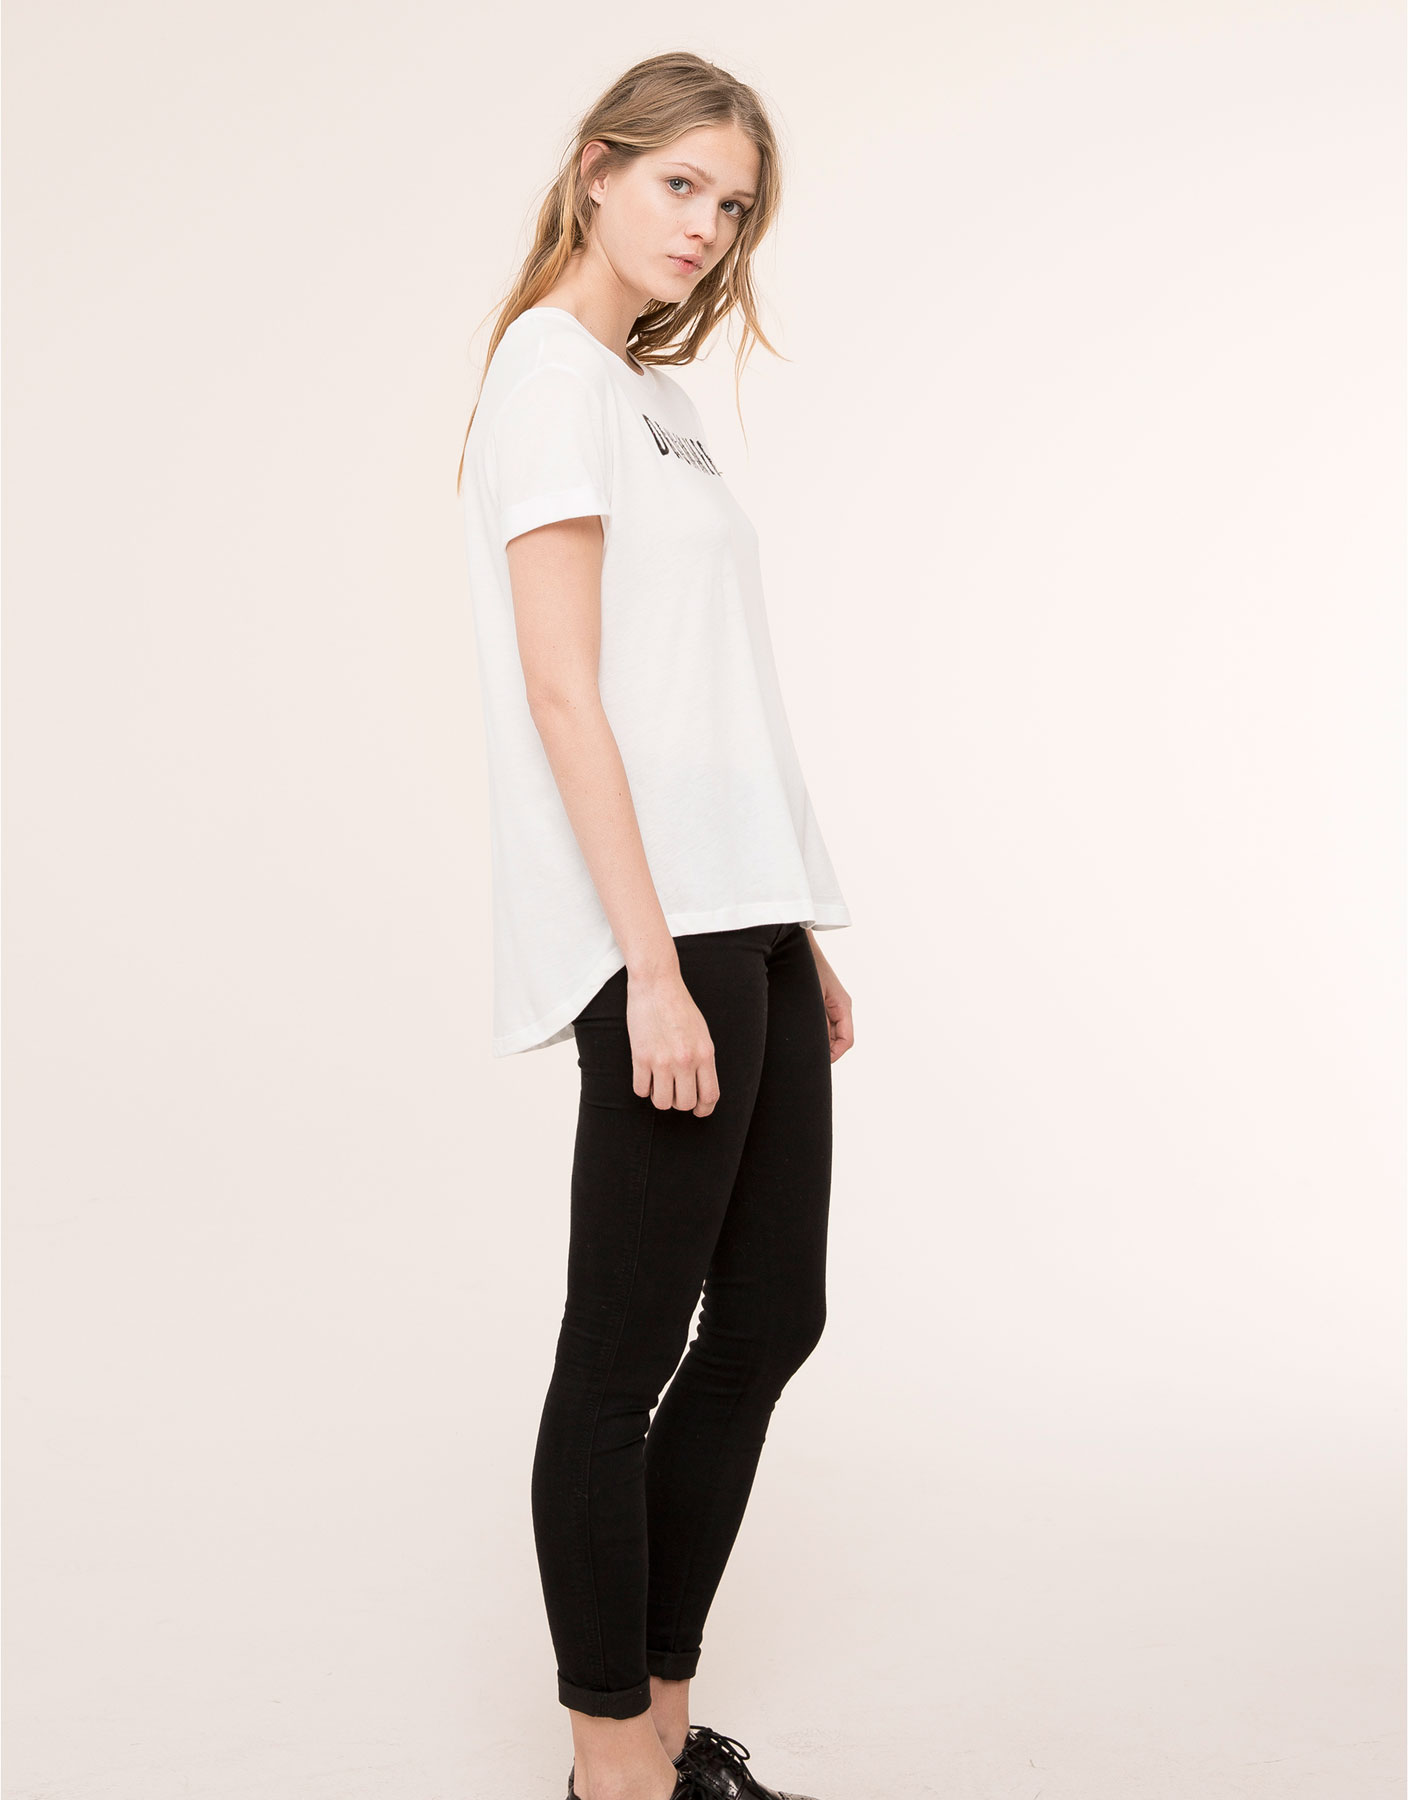 This is on my Wish List: CAMISETA TEXTO STRASS - CAMISETAS Y TOPS - MUJER - PULL&BEAR España